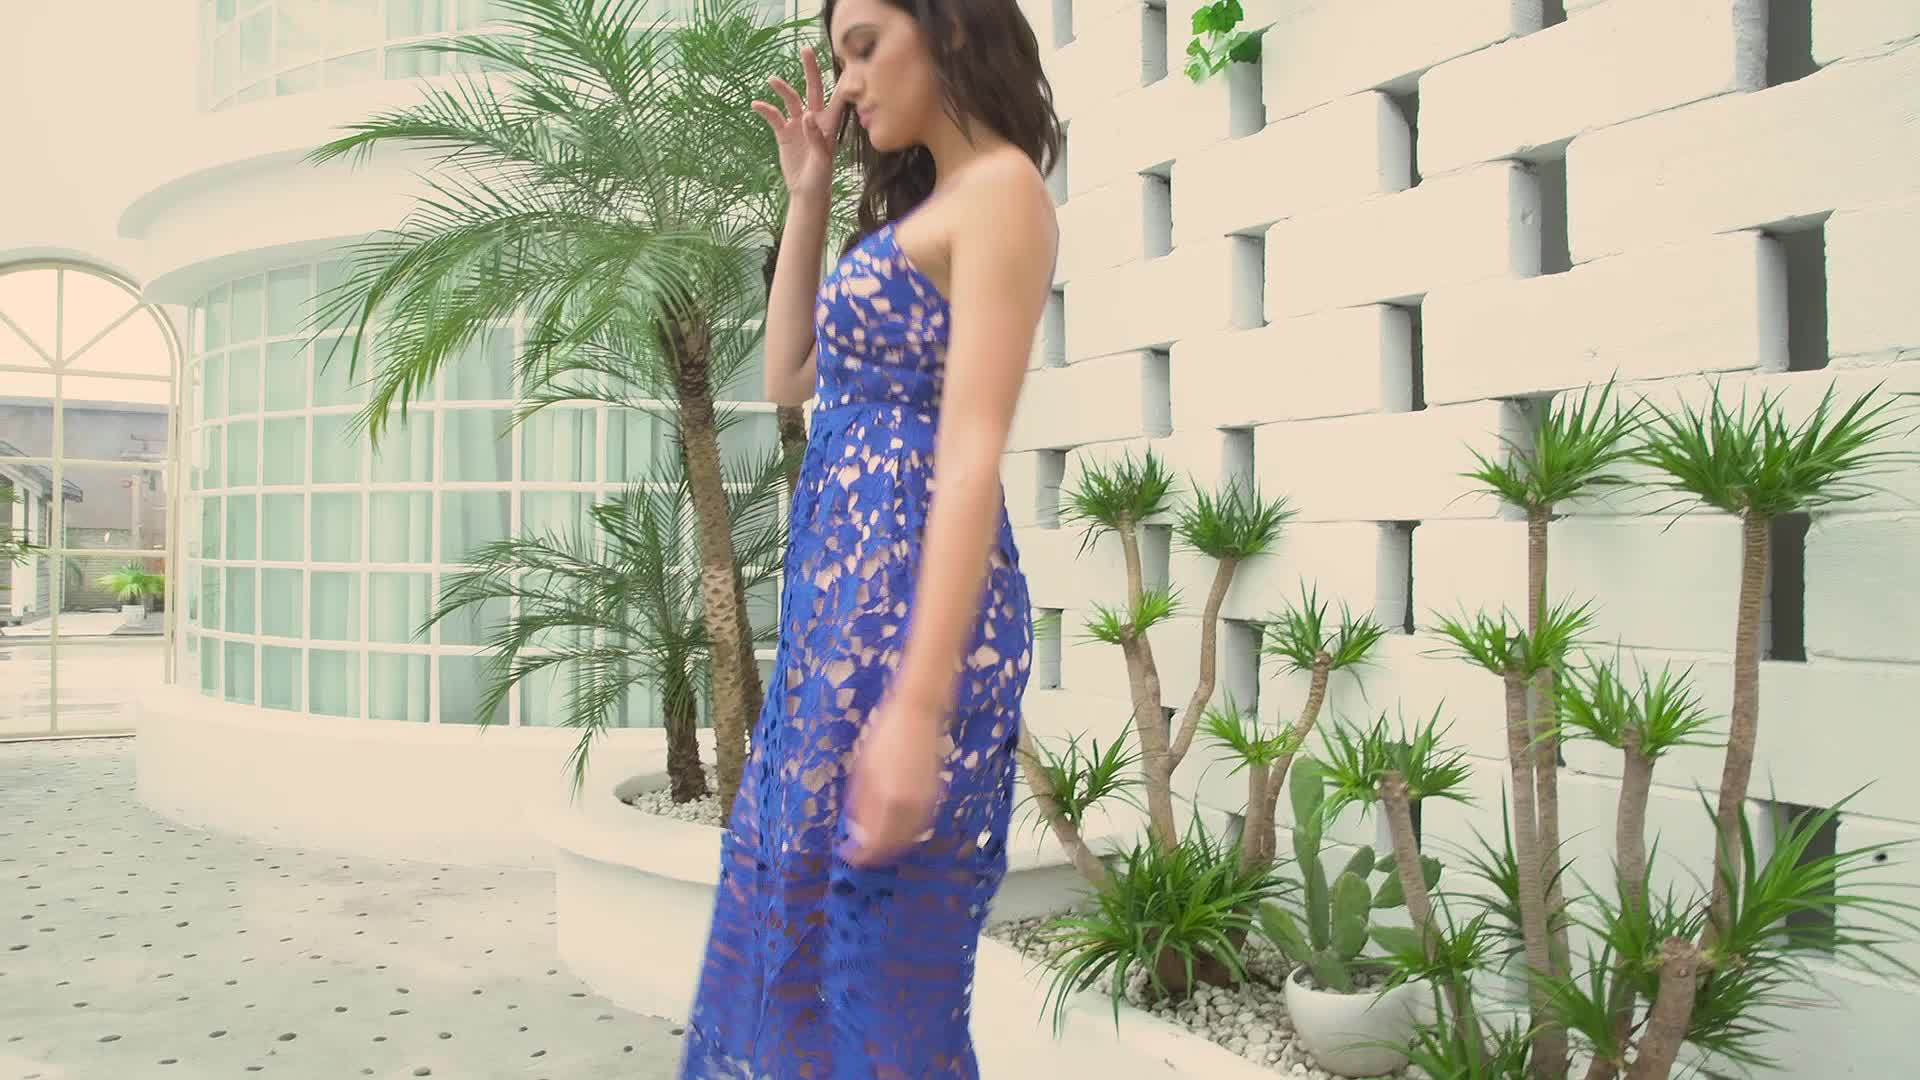 Hot Selling Elegant Lace Hollow Out Nude Illusion Girls Party Dresses